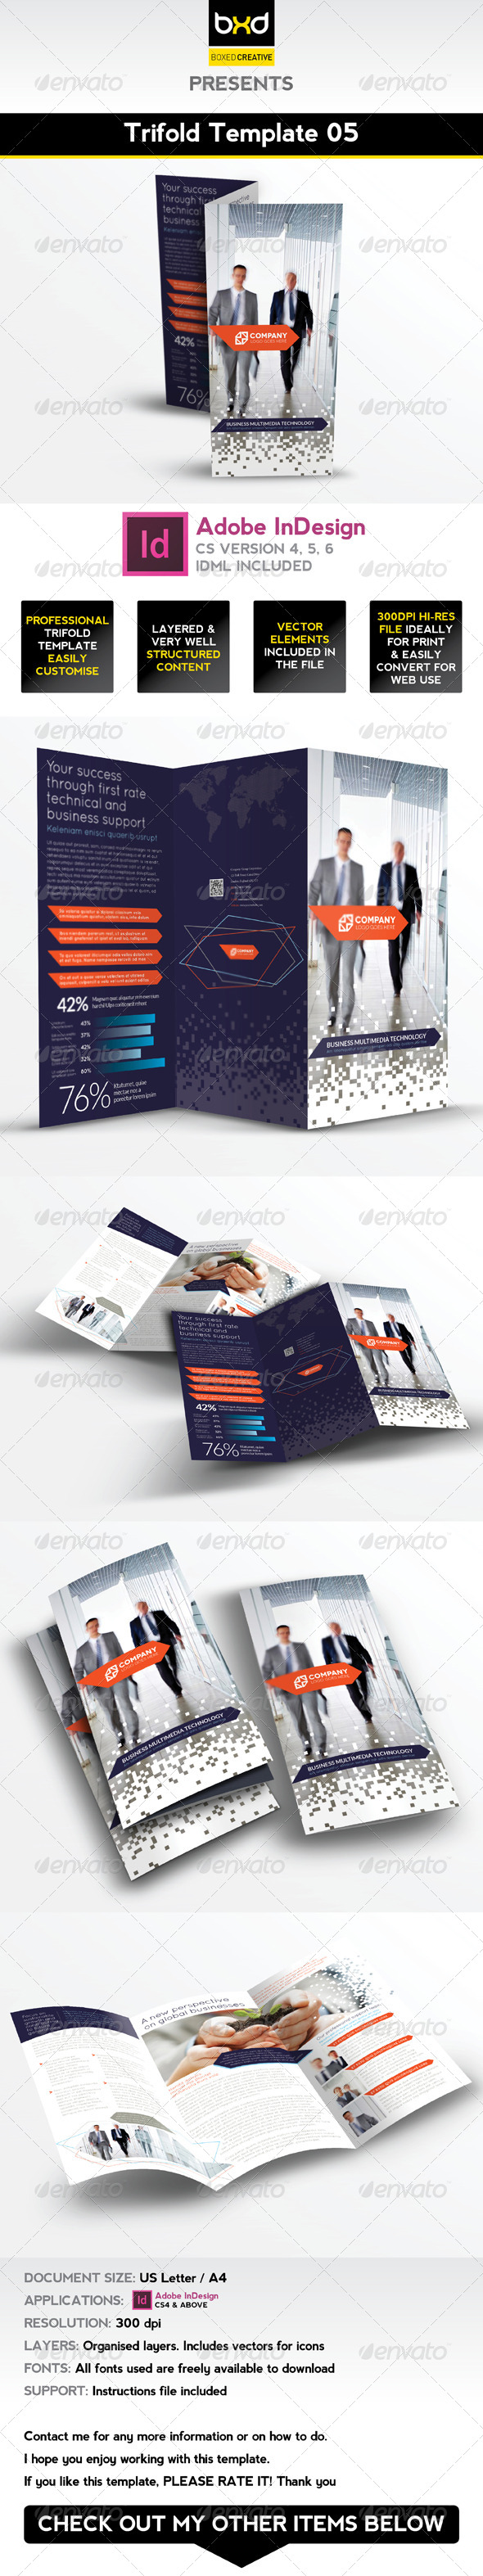 GraphicRiver Trifold Brochure Template 05 InDesign Layout 4994855